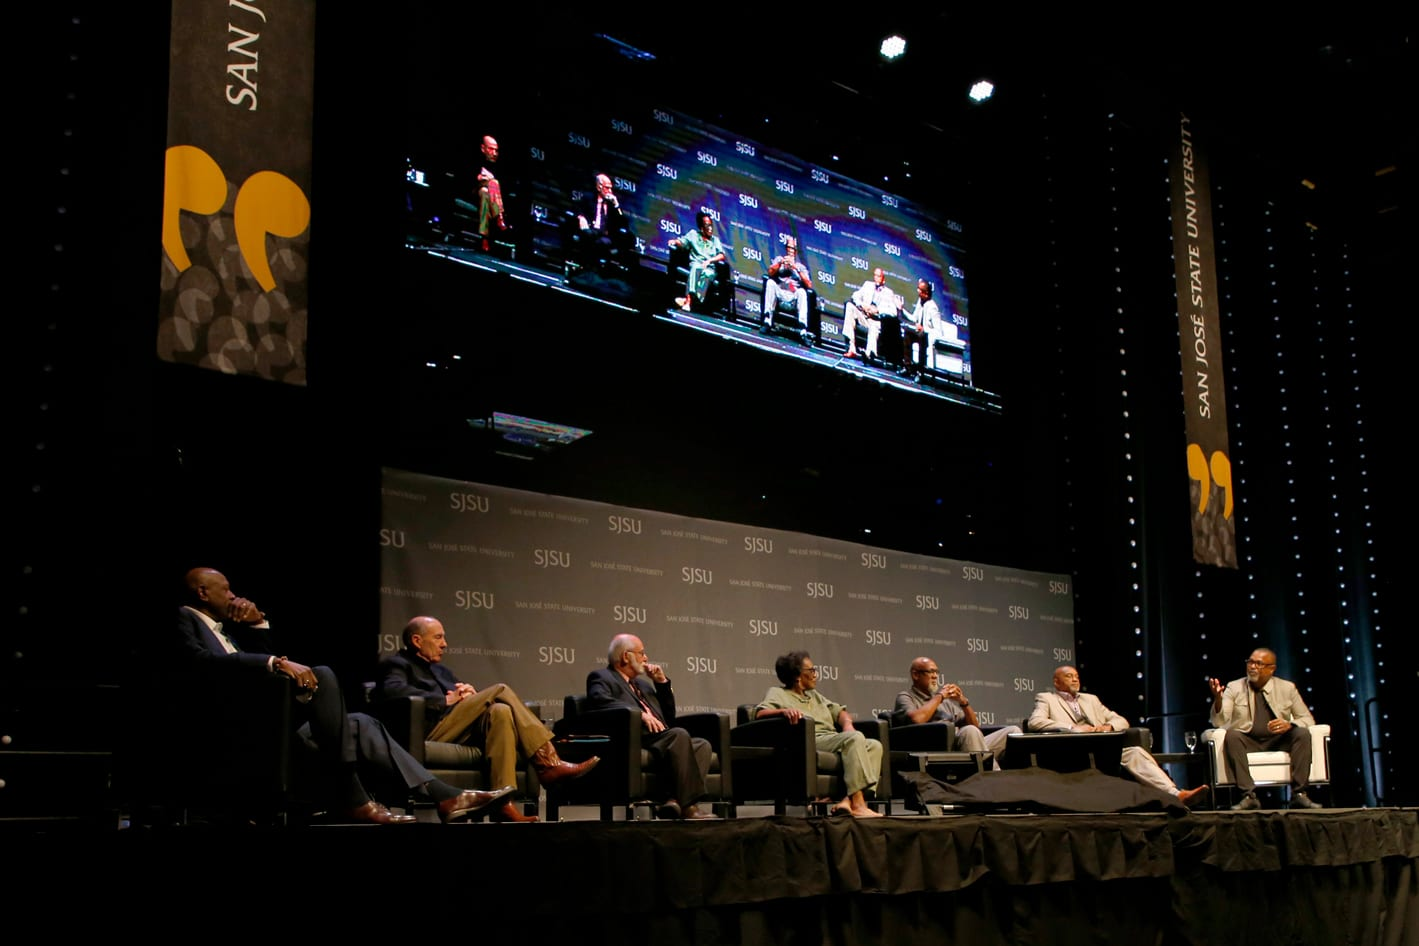 Panelists Spencer Haywood, Cleve Livingston, Paul Hoffman, Wyomia Tyus, John Carlos and Tommie Smith discuss athlete activism in the 1960s with Moderator Kenneth Shropshire. Photo: Josie Lepe